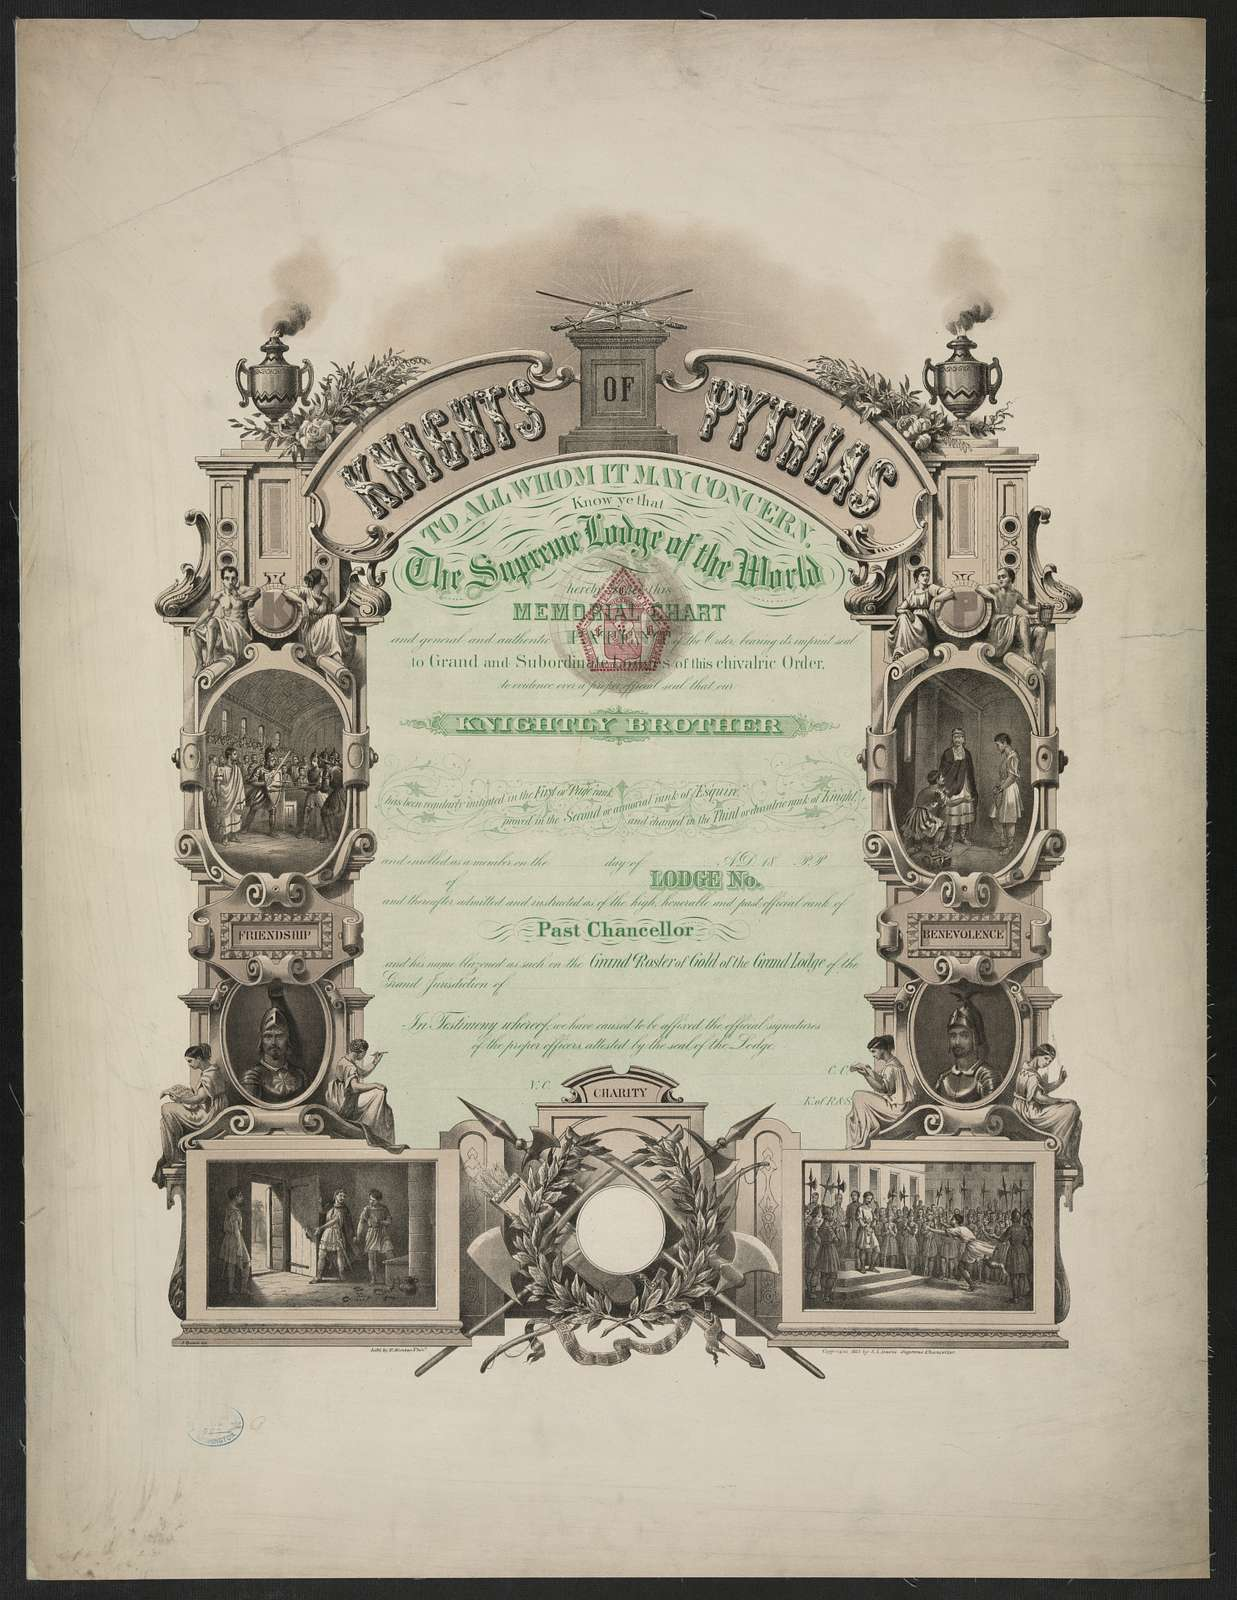 Knights of Pythias, to all whom it may concern. Know ye that the Supreme Lodge of the World hereby issues this memorial chart ... / J. Queen del. ; lith. by T. Hunter, Phila.